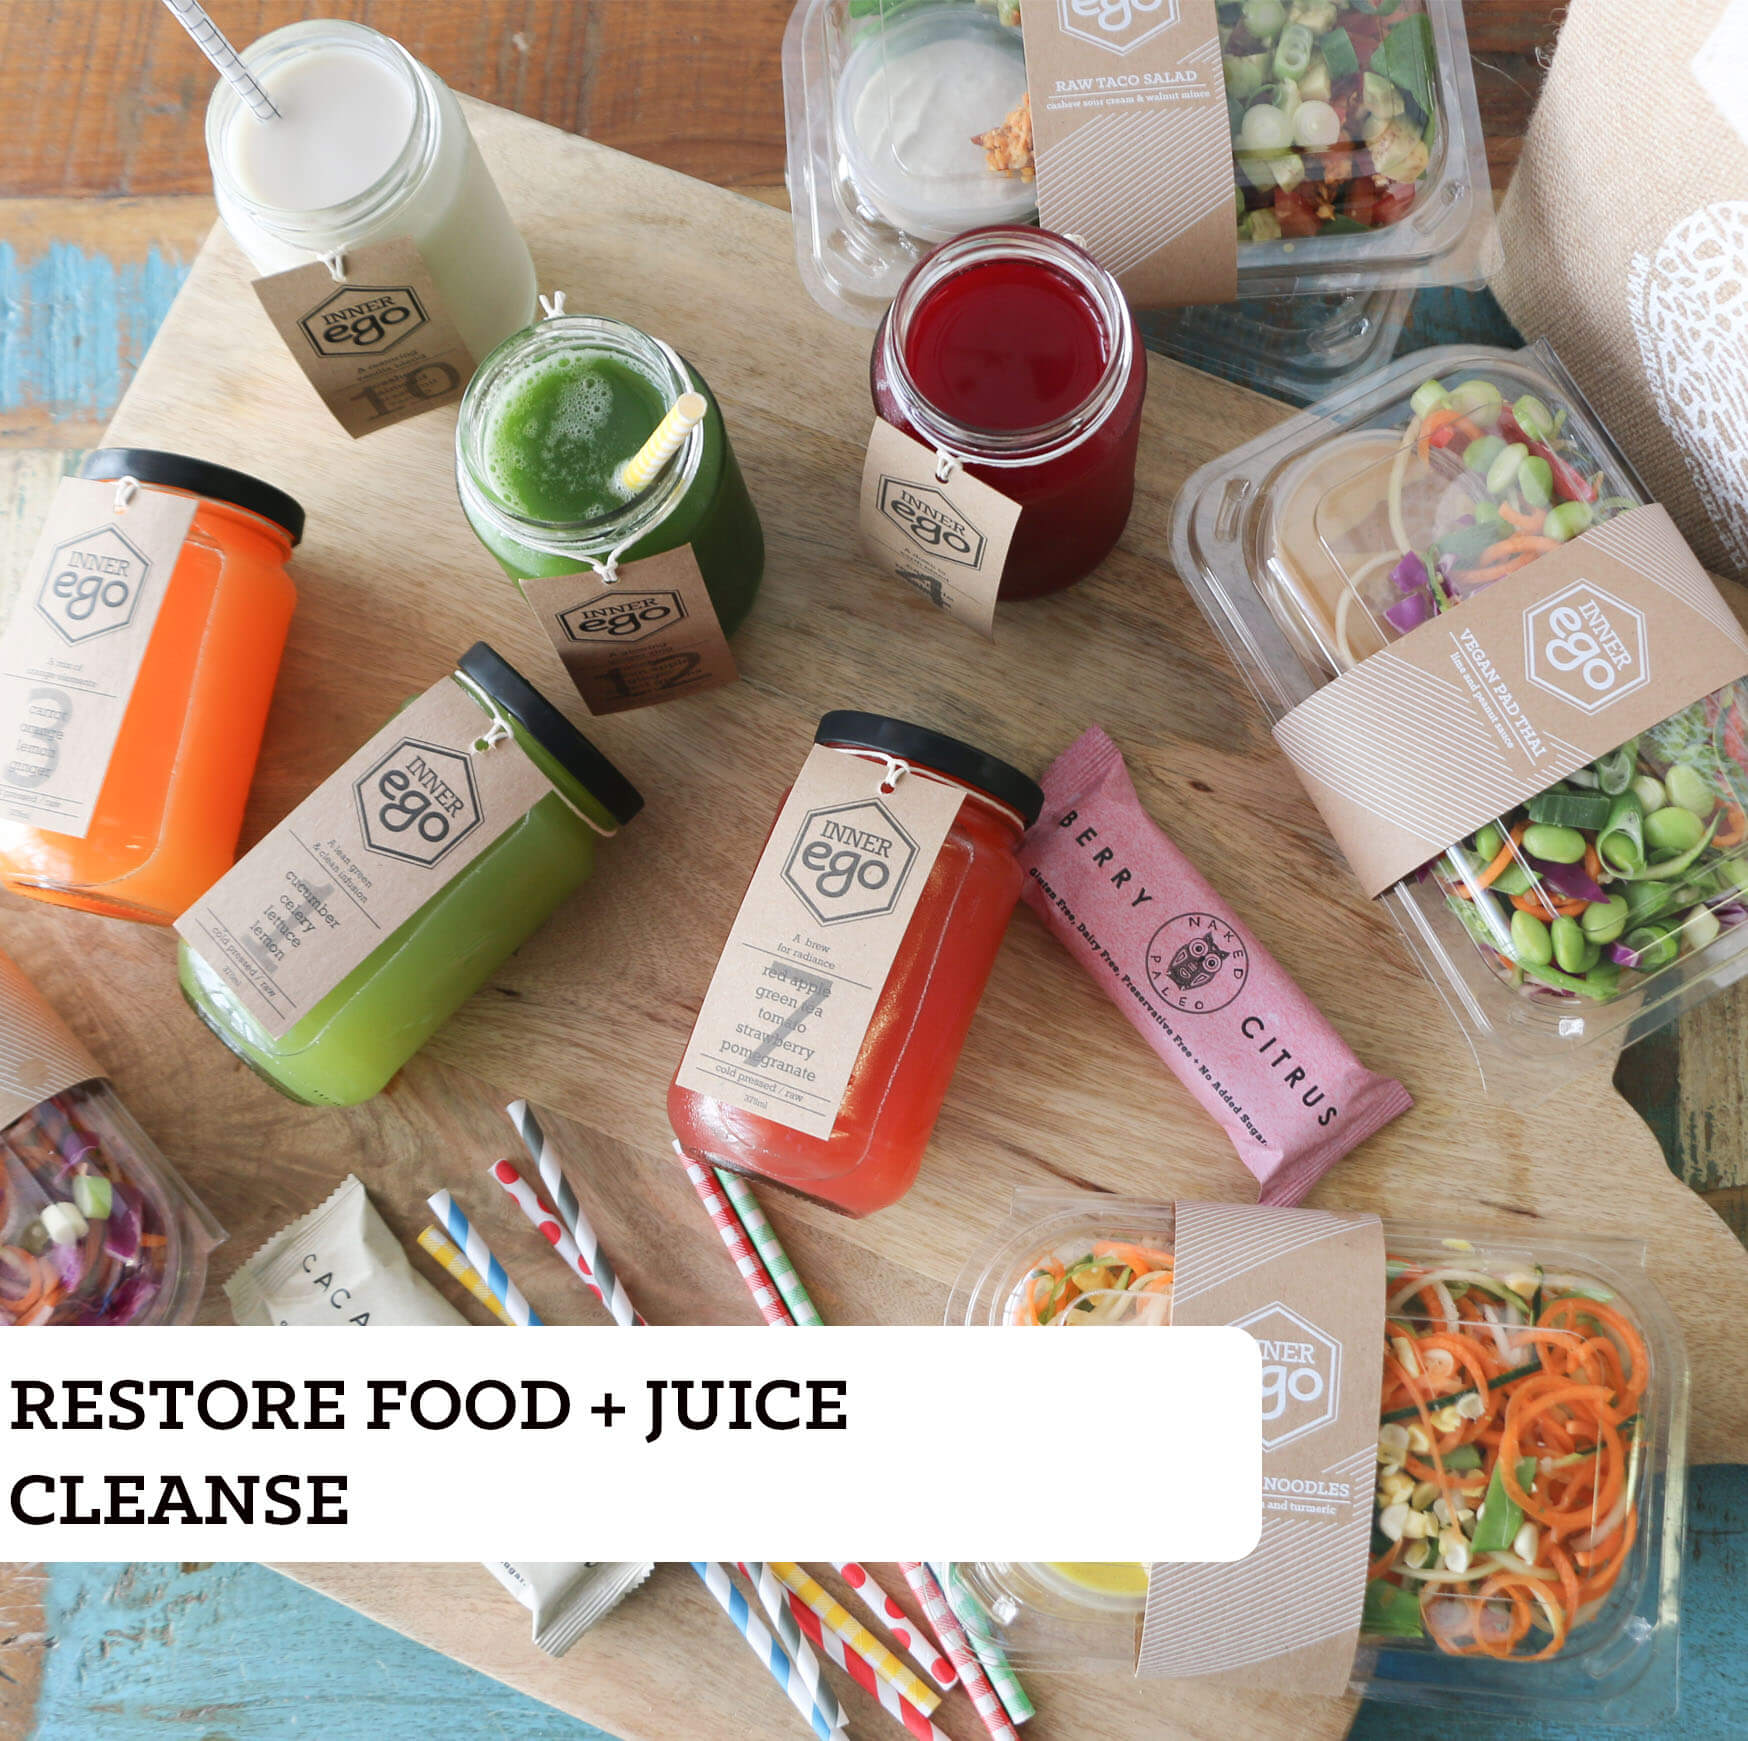 Return food + juice cleanse